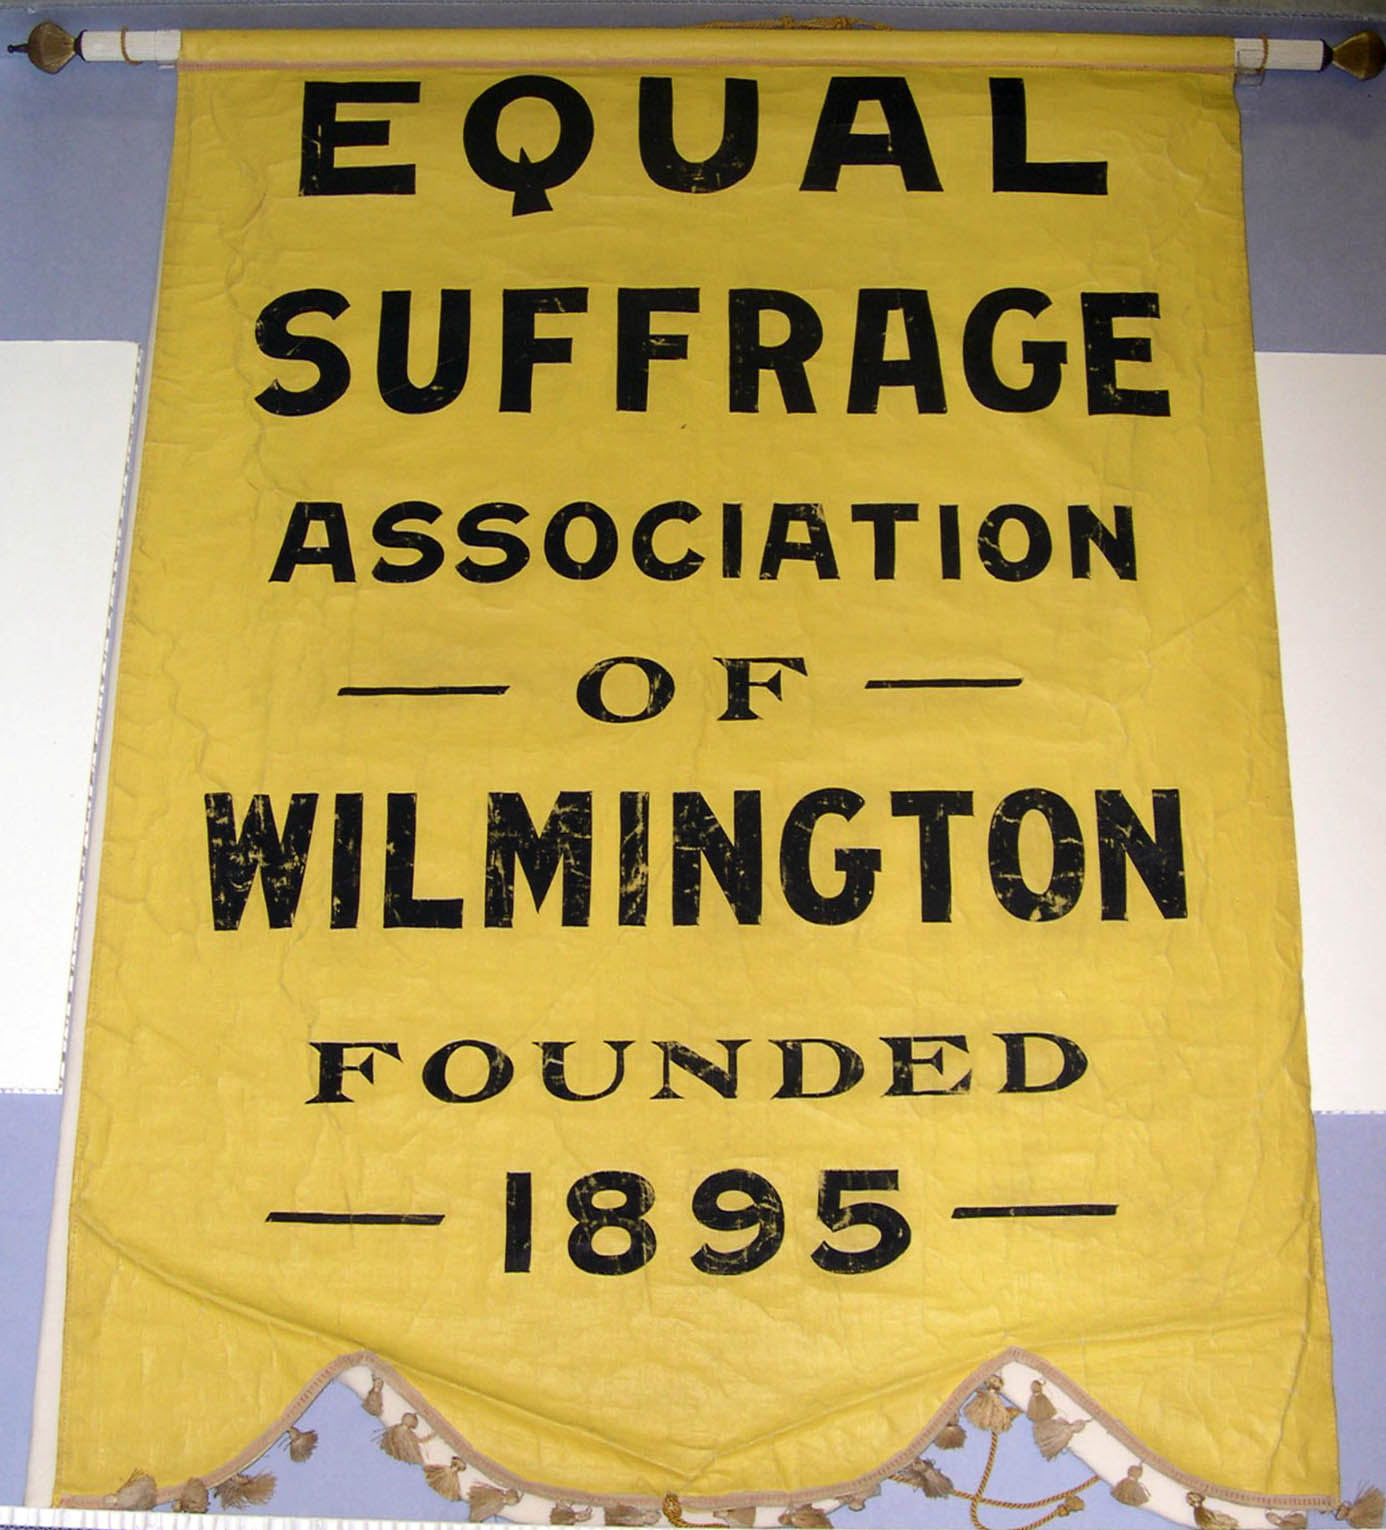 Wilmington Equal Suffrage Association Founded 1895 [banner], circa 1915